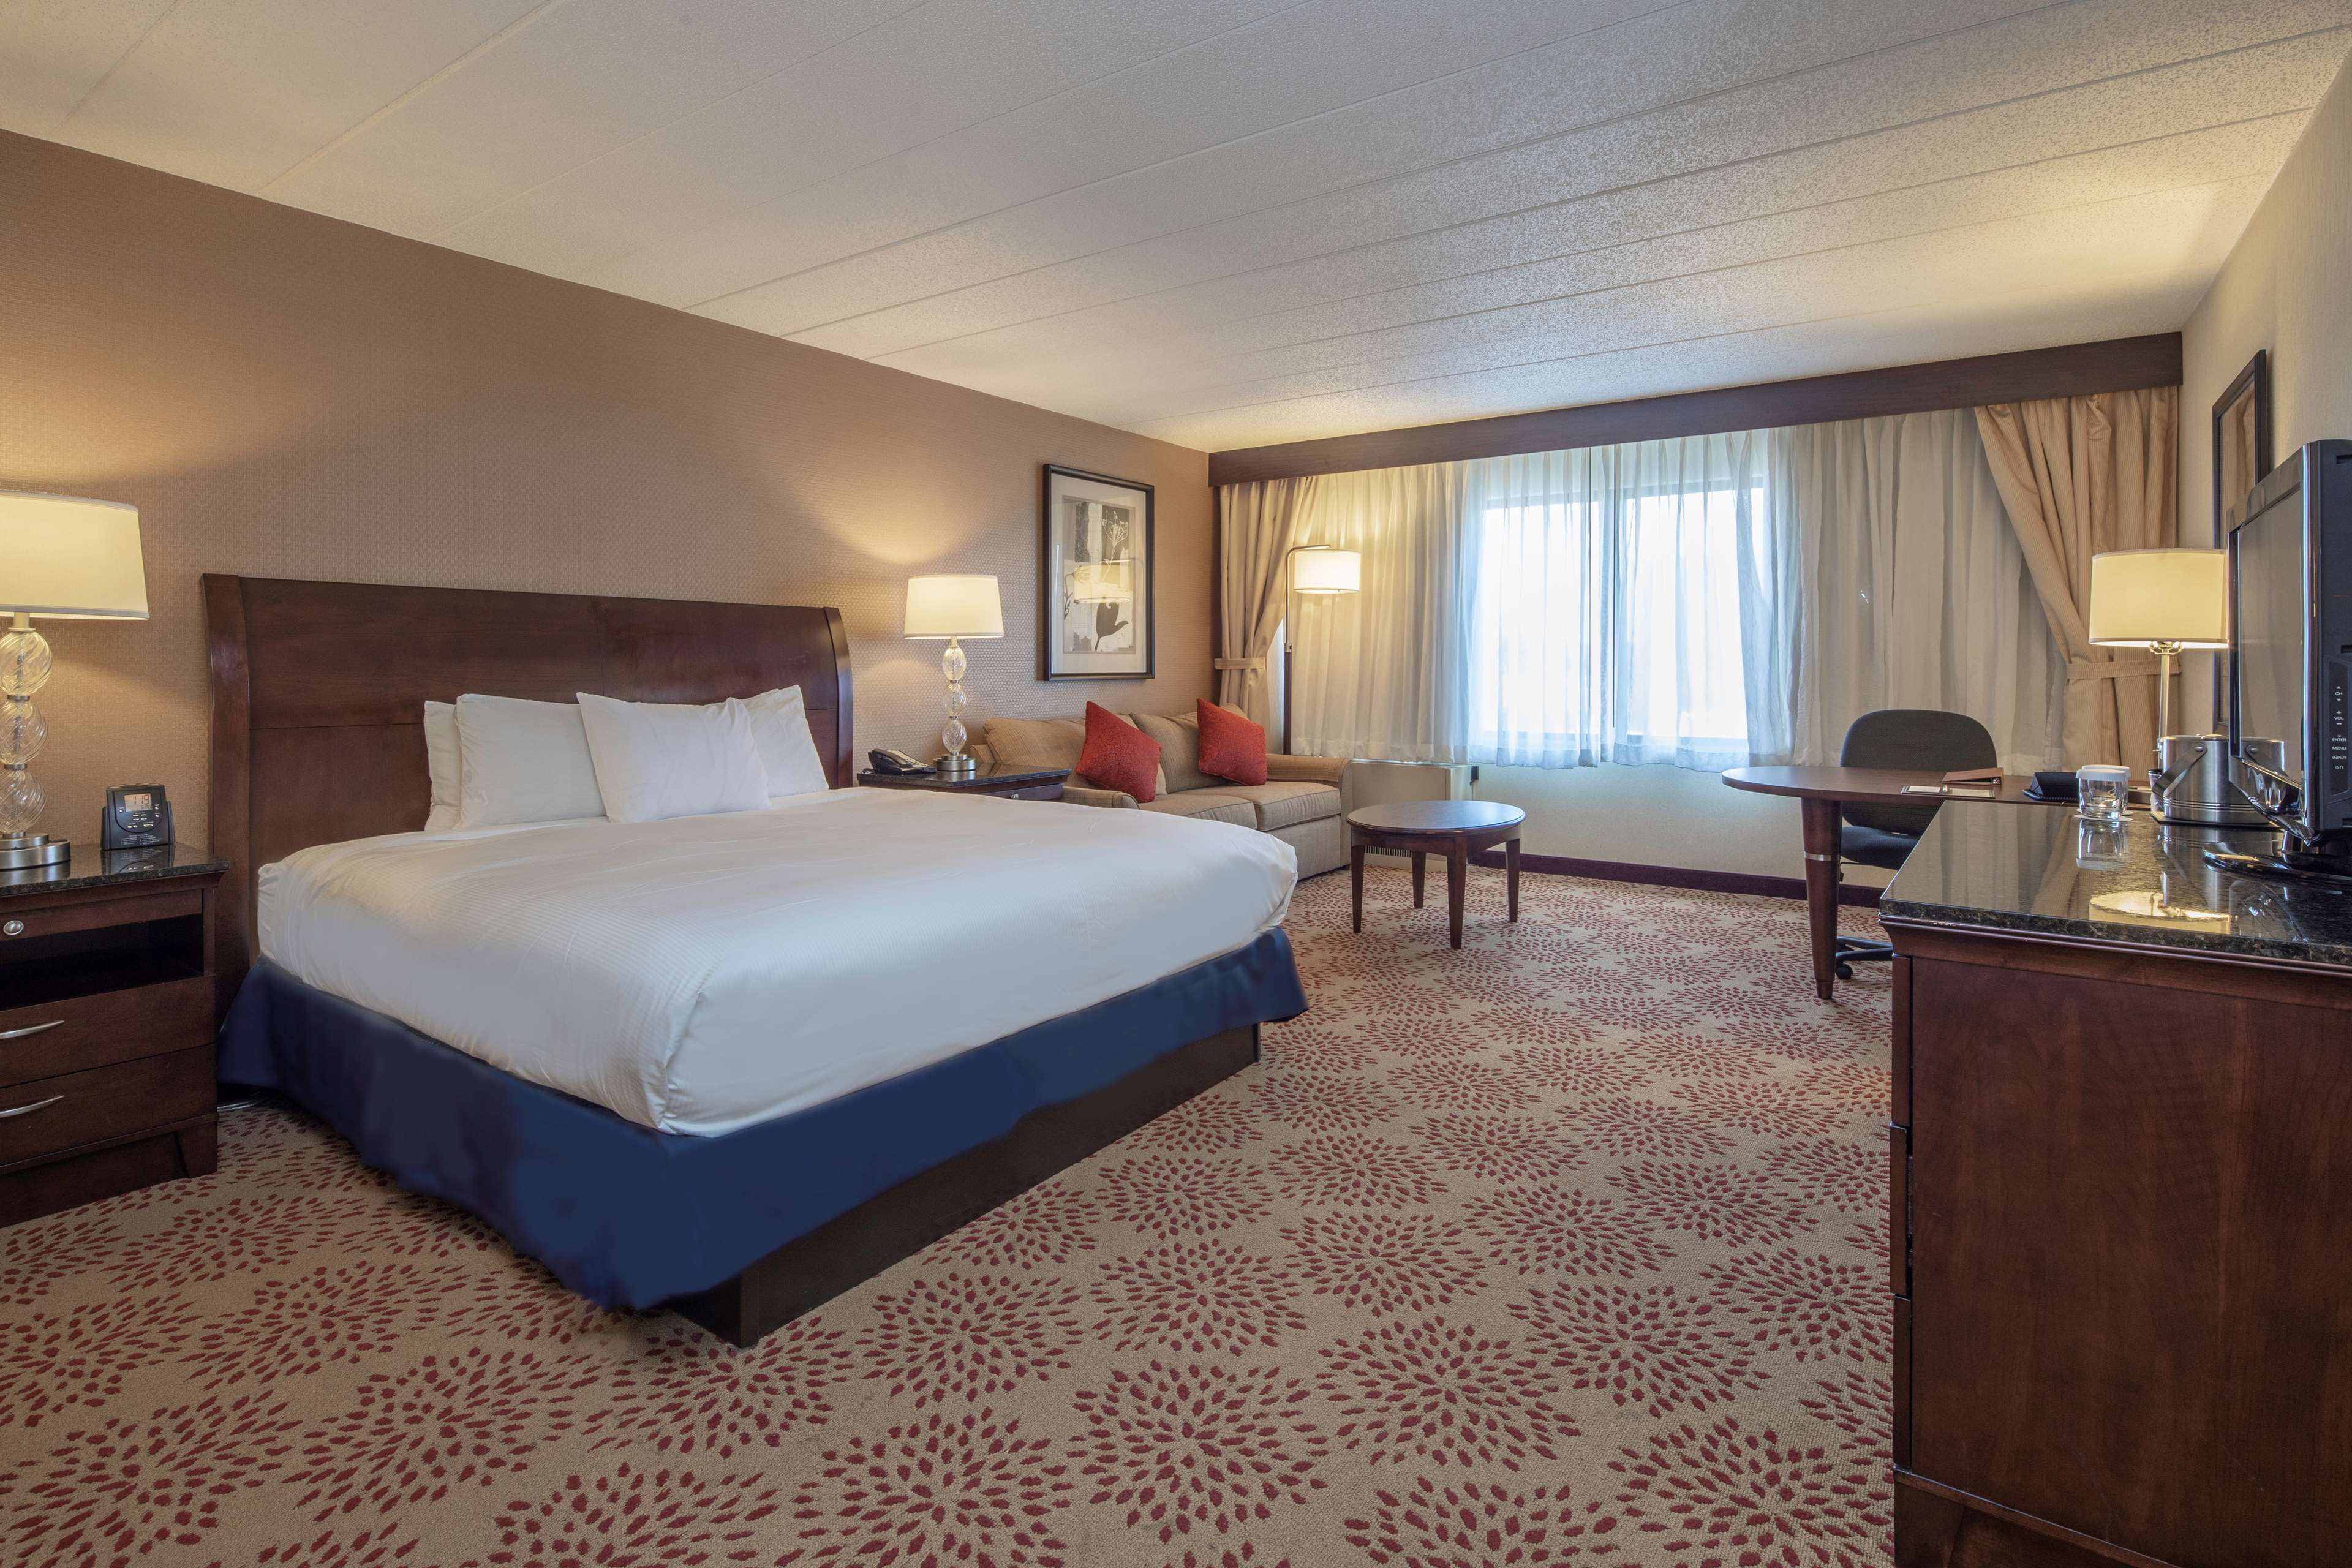 DoubleTree by Hilton Hotel Pittsburgh - Monroeville Convention Center image 13